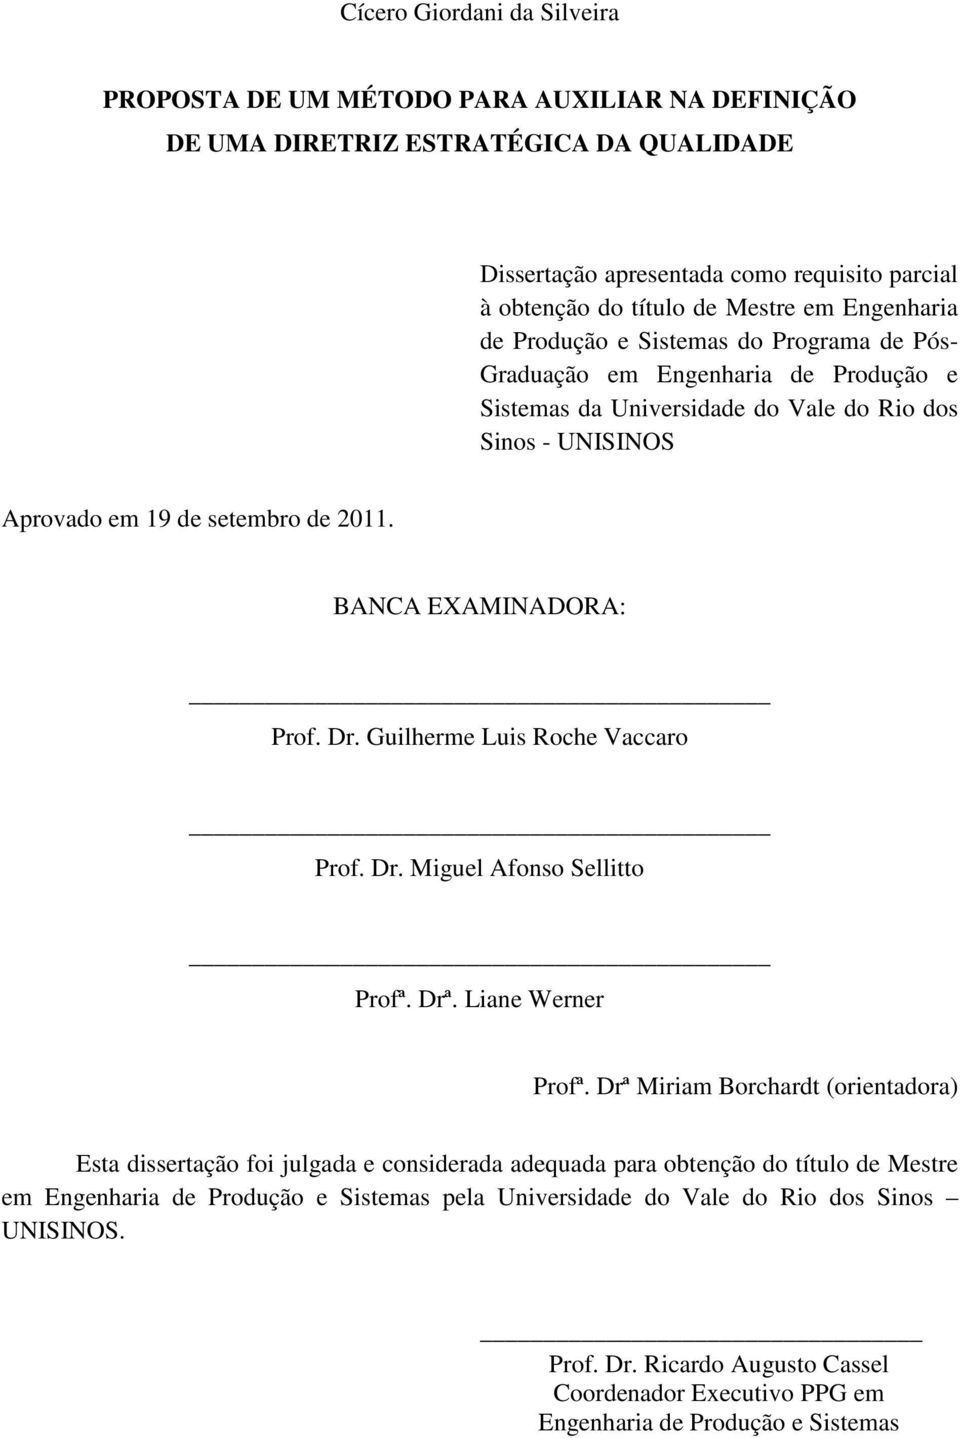 BANCA EXAMINADORA: Prof. Dr. Guilherme Luis Roche Vaccaro Prof. Dr. Miguel Afonso Sellitto Profª. Drª. Liane Werner Profª.